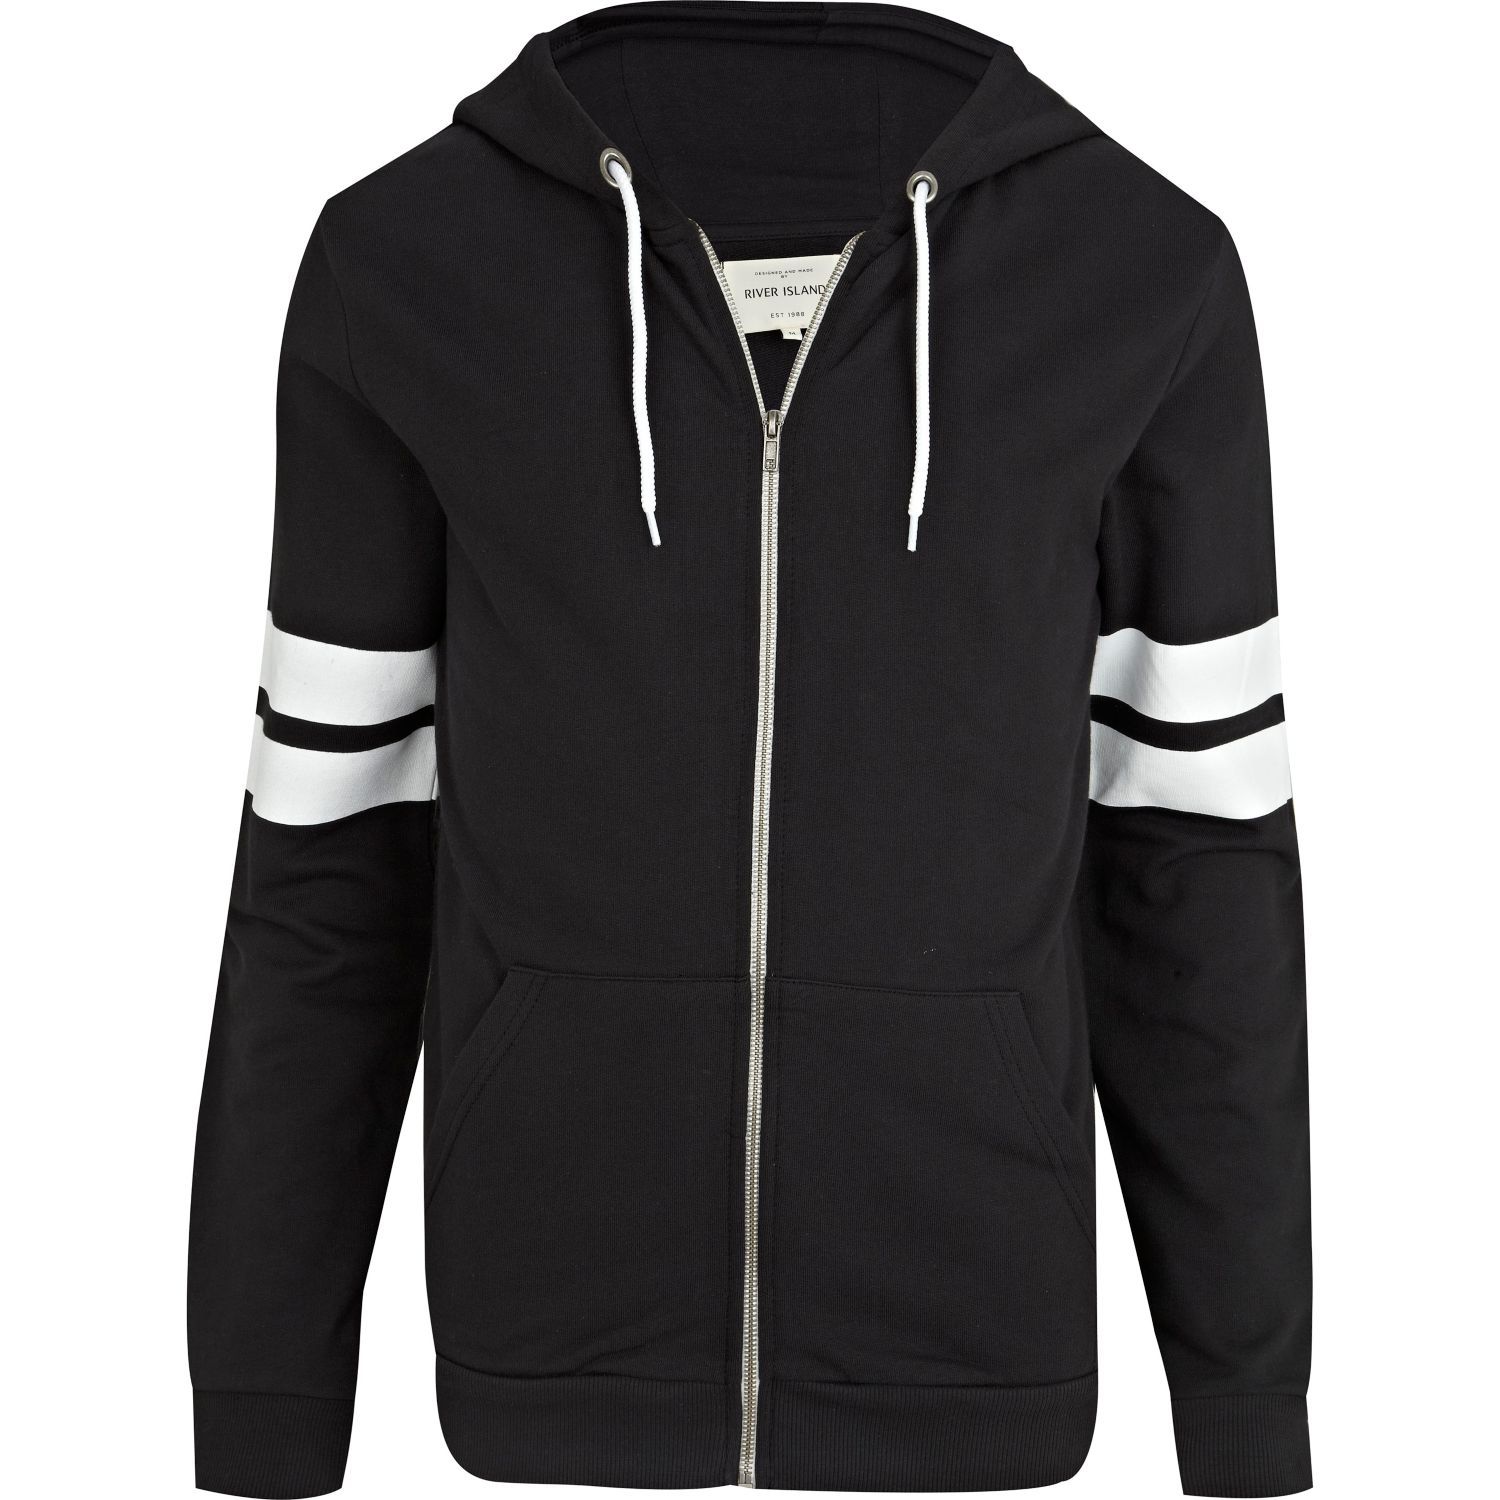 Black and white striped hoodie